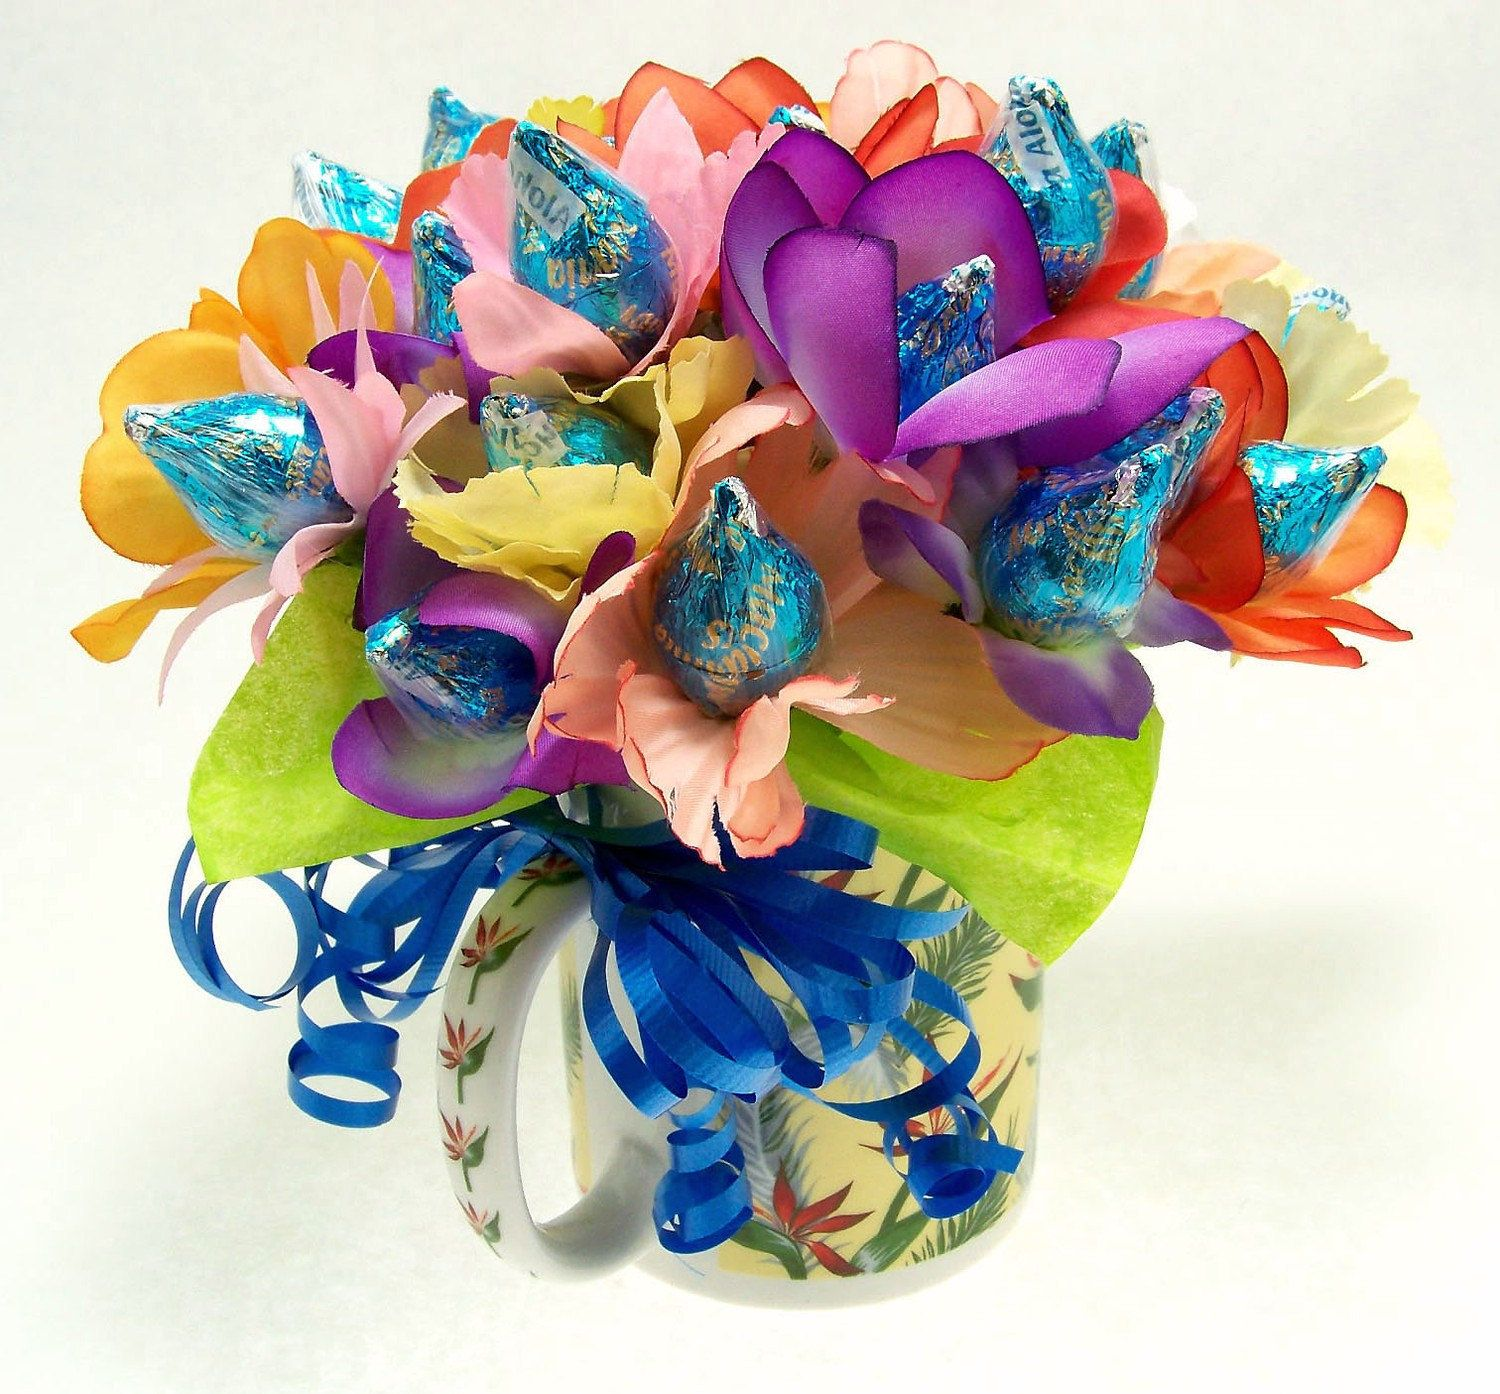 Chocolate bouquet on pinterest candy flowers bouquet of chocolate - 24 Stems Floral Candy Bouquet